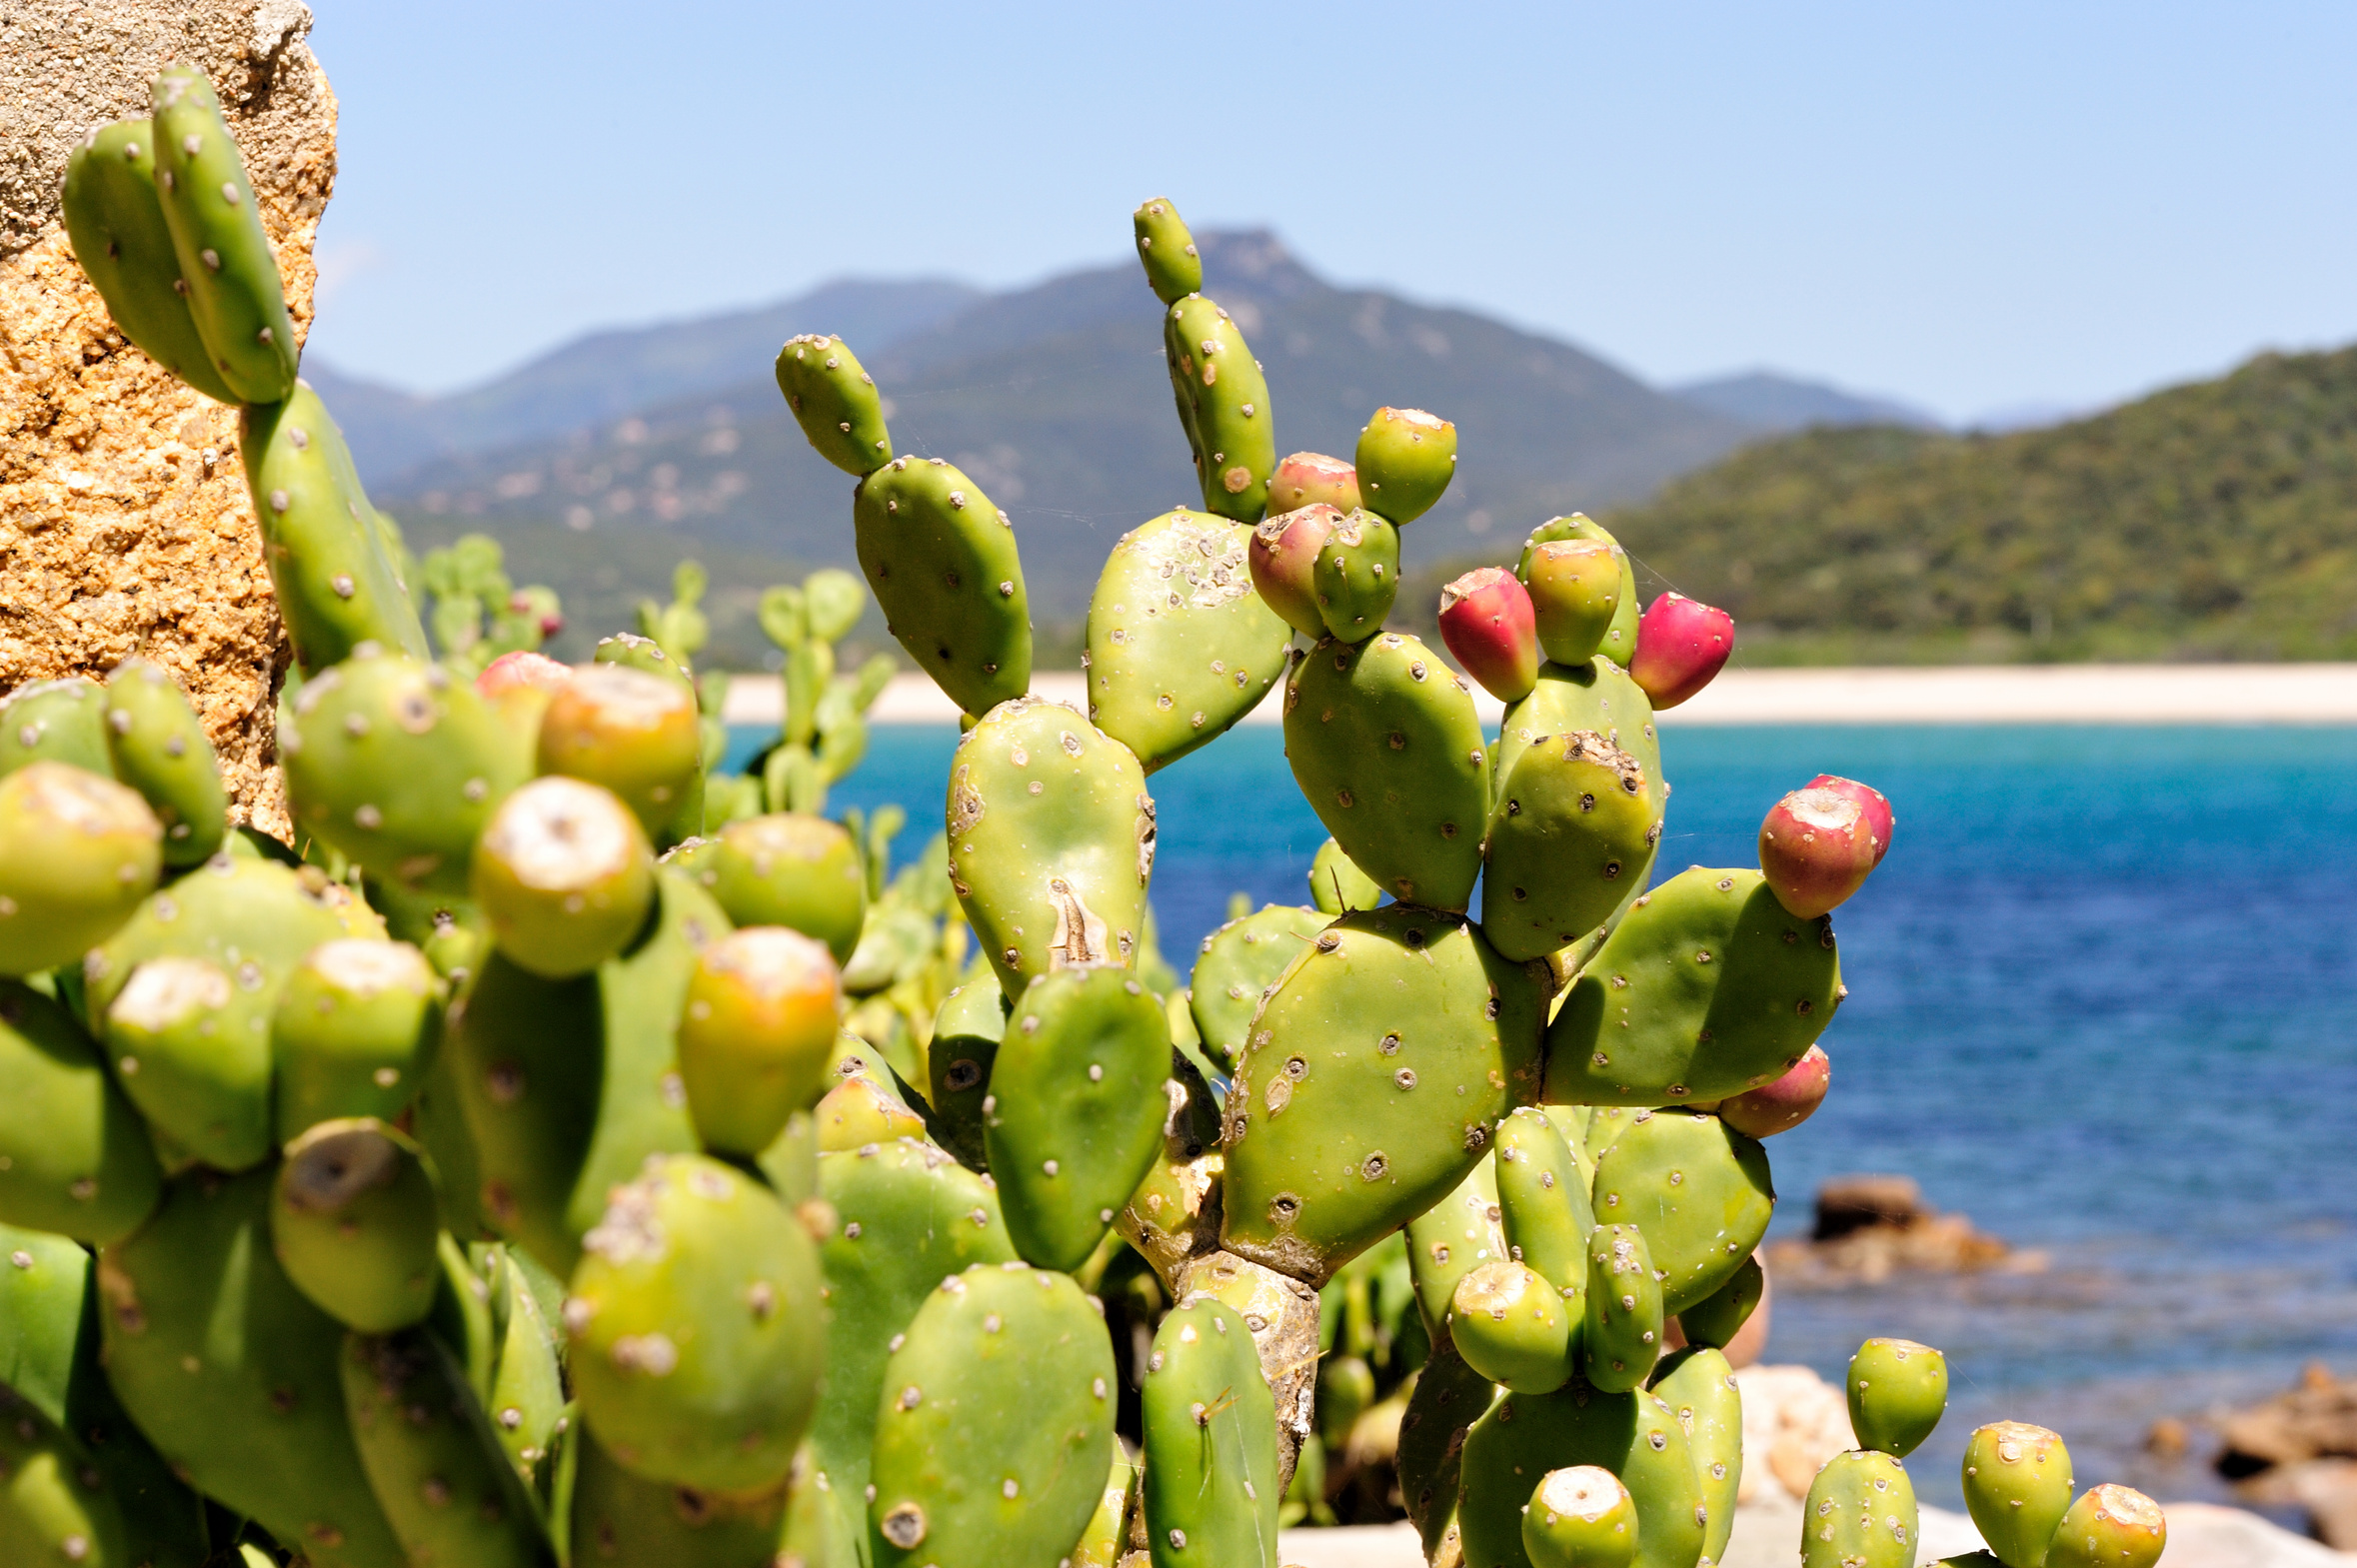 https://i0.wp.com/e-preaklypear.byethost13.com/wp-content/uploads/2015/02/golfe-valinco-corse-avec-figues-barbarie-87349.jpg